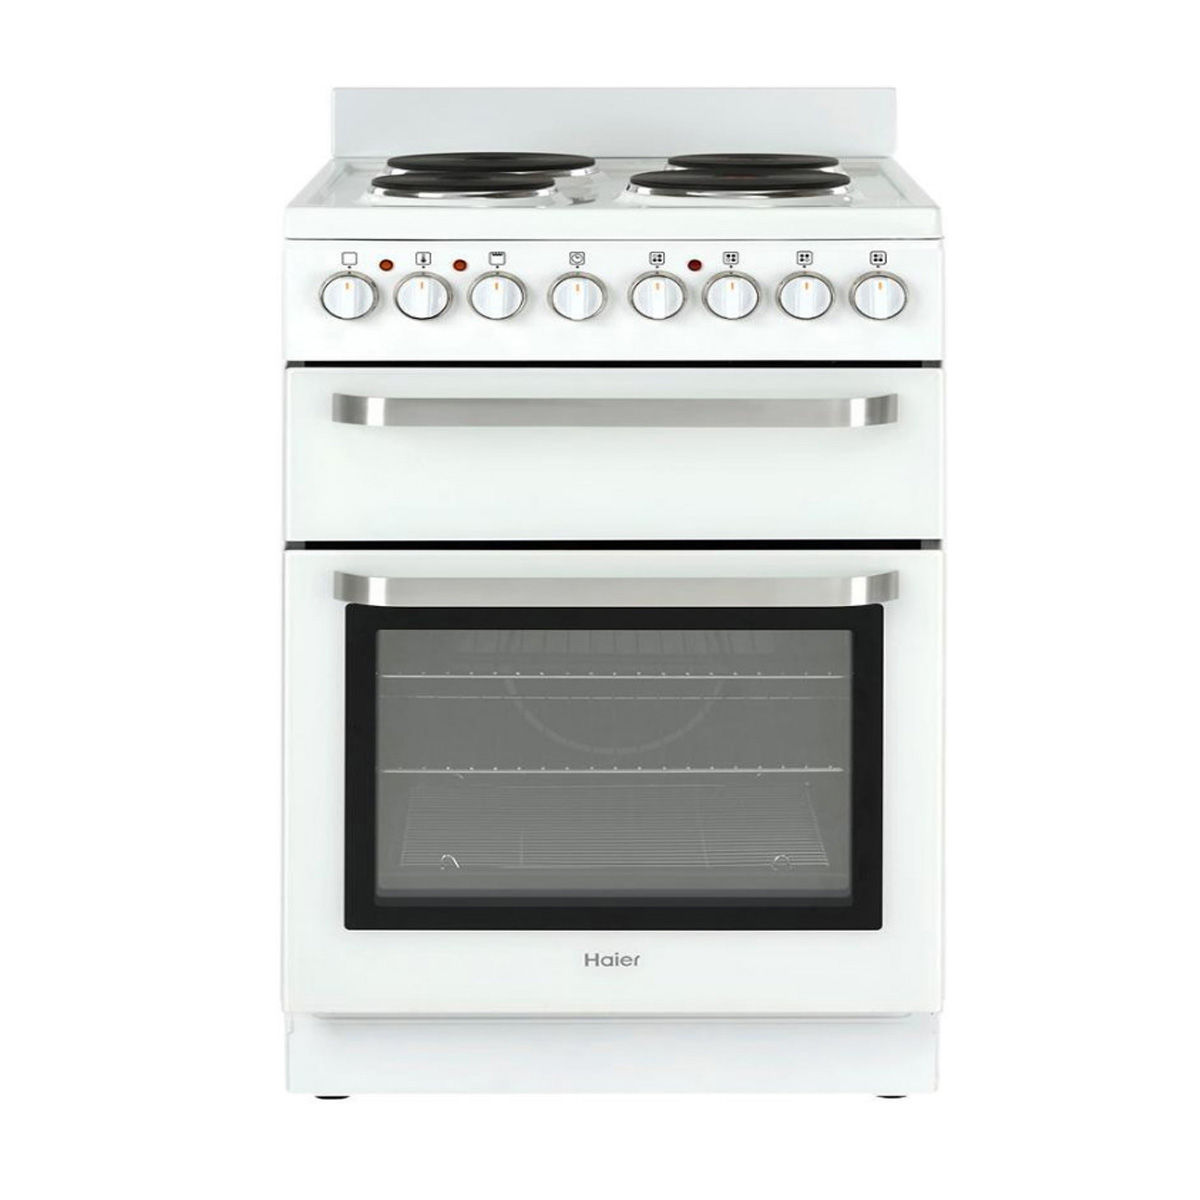 Haier HOR54B5MCW1 Freestanding Electric Oven/Stove